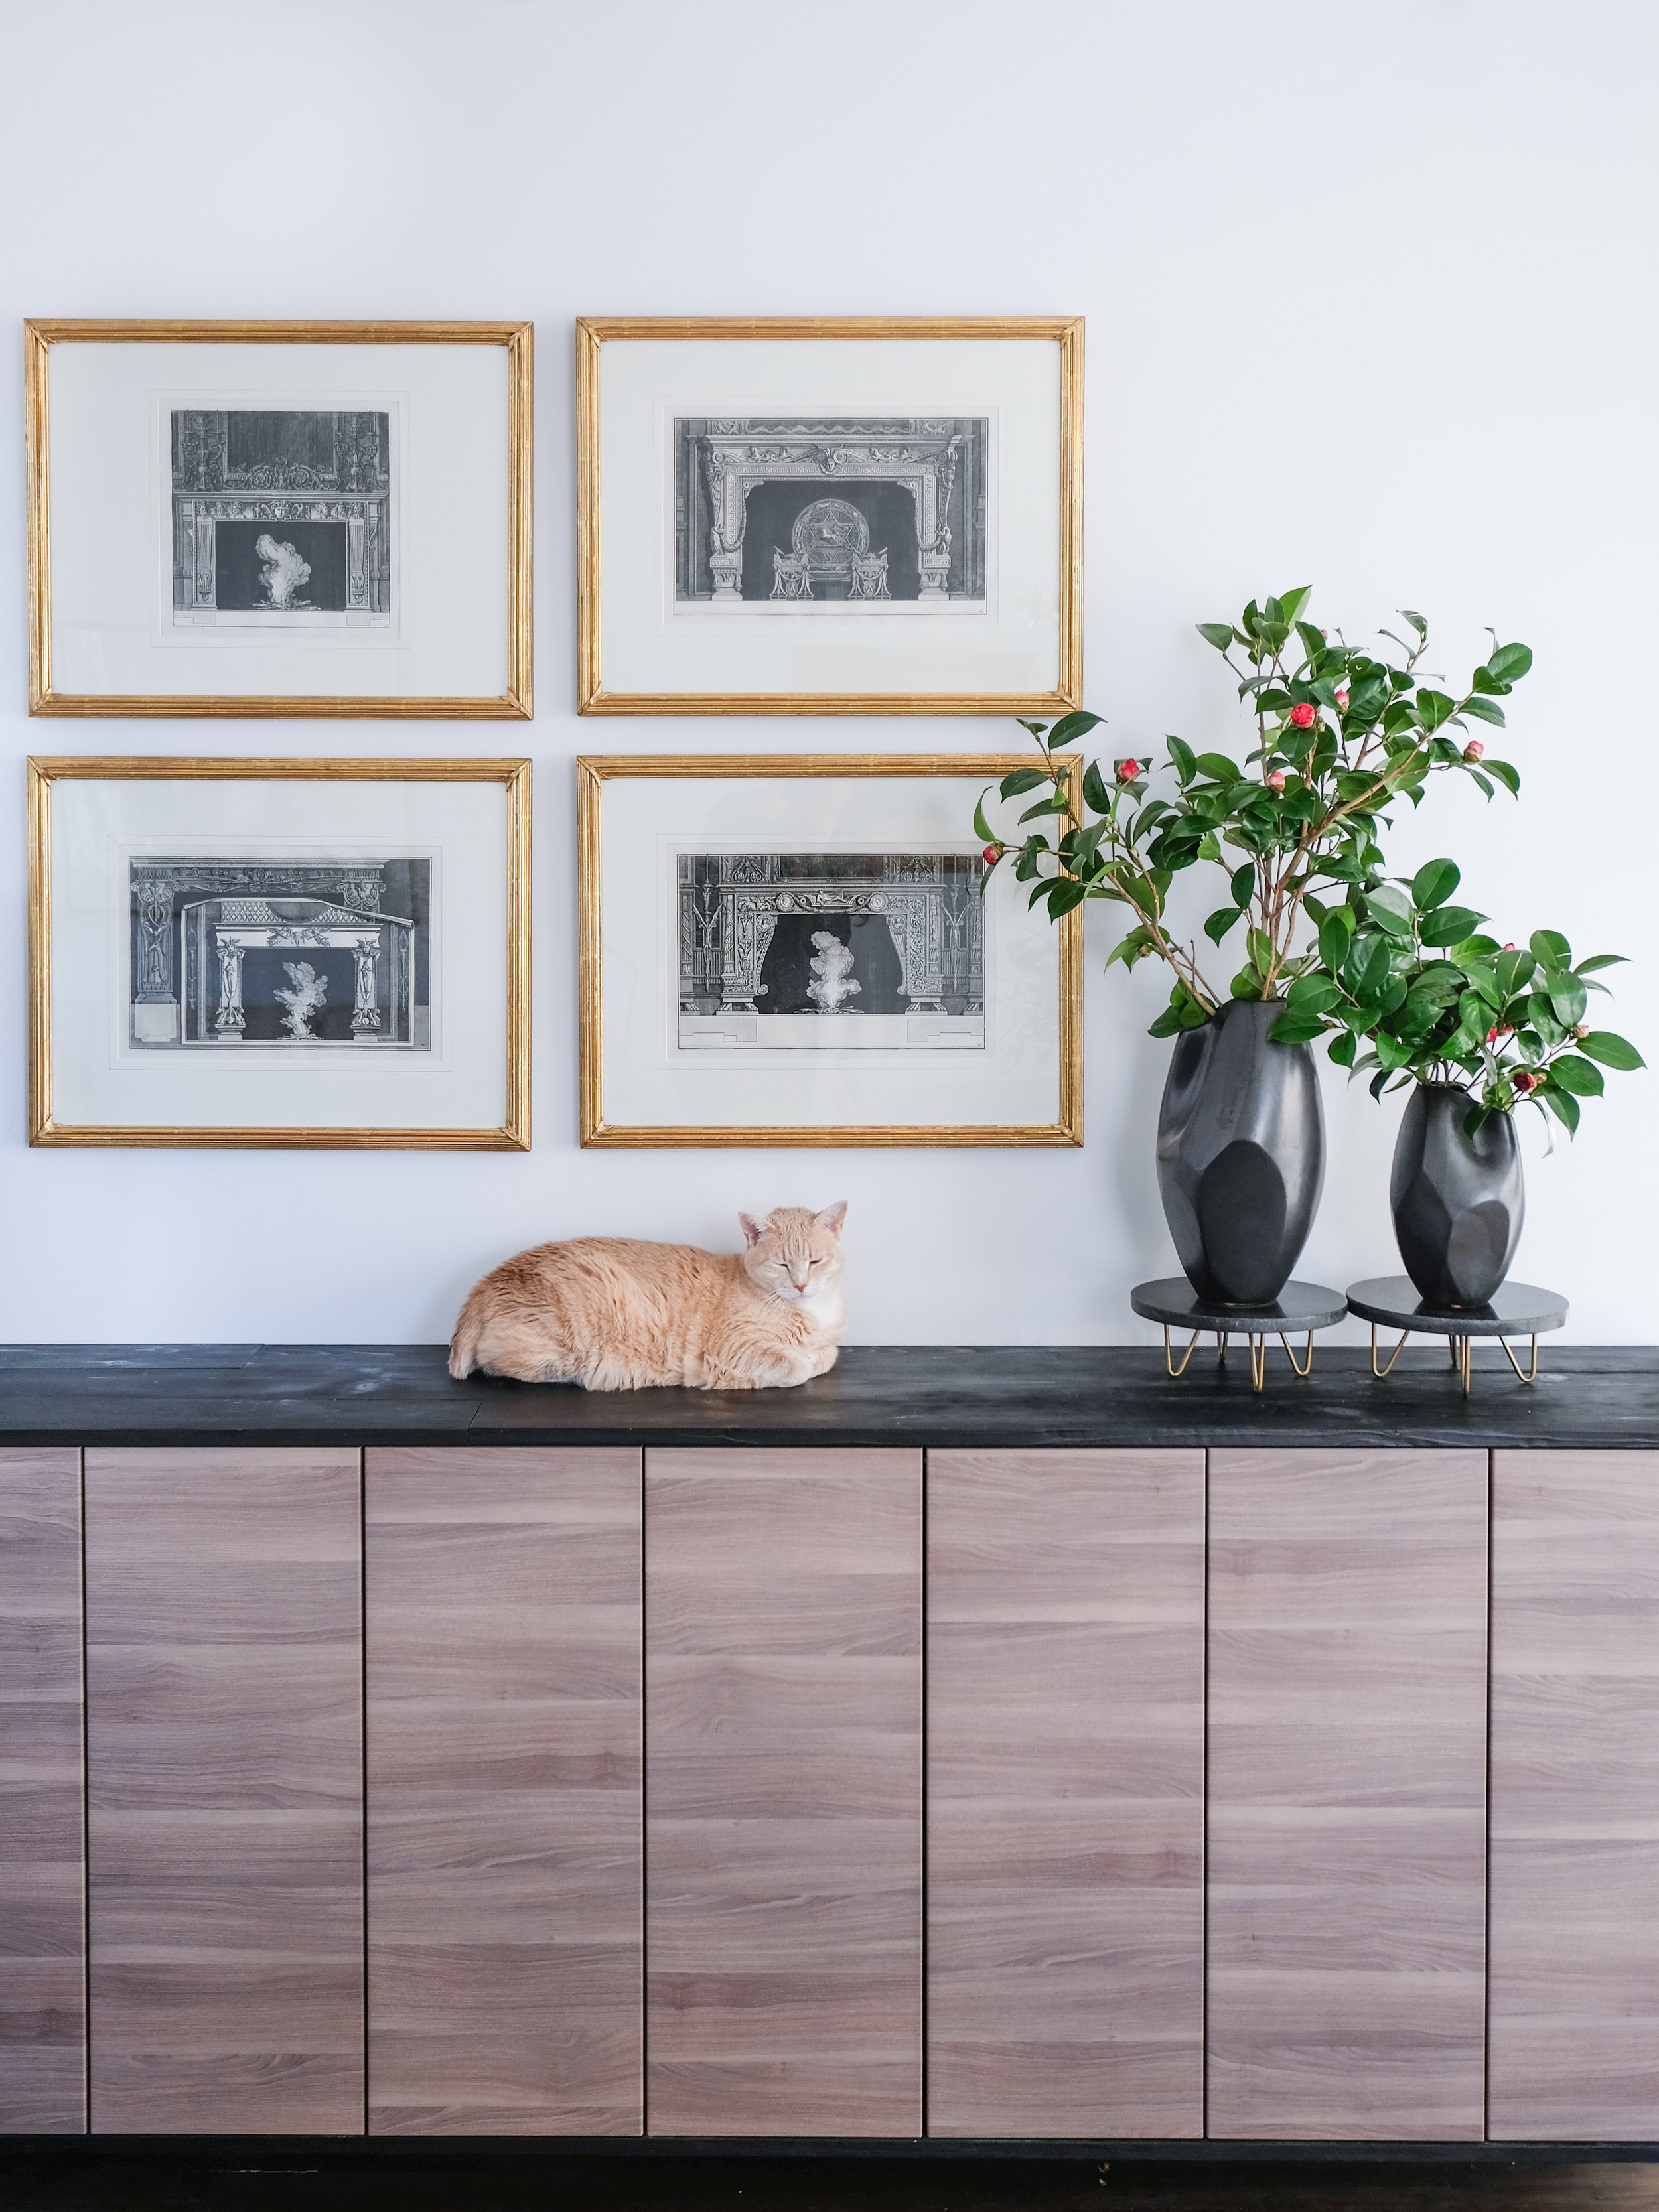 I love these black vases from West Elm (you can find them linked below).